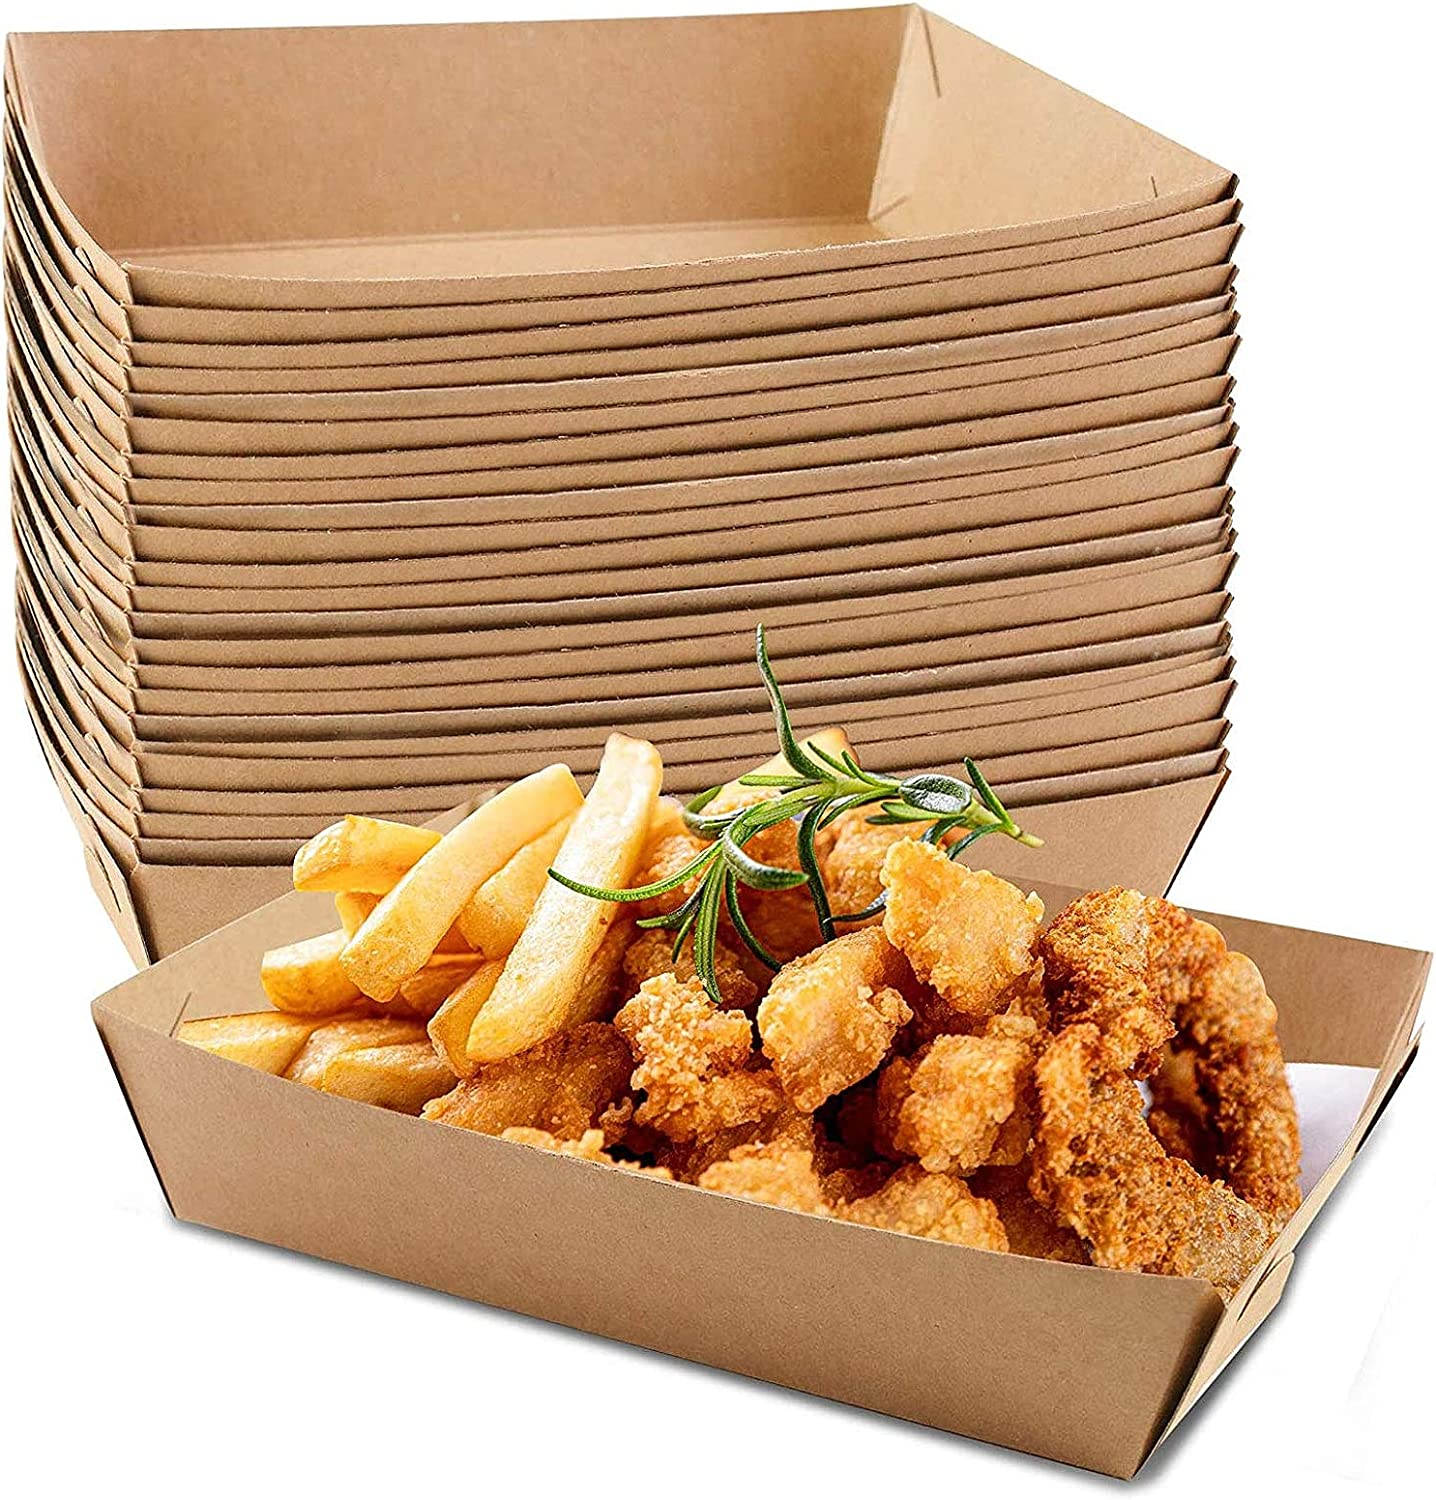 MHGLOVES Disposable Kraft Paper Food Serving Tray, French Fries Chicken Hot Dog Box Trays, Kraft Paper Coating Boat Shape Snack Open Box Trays for Party Supplies (100Pcs)